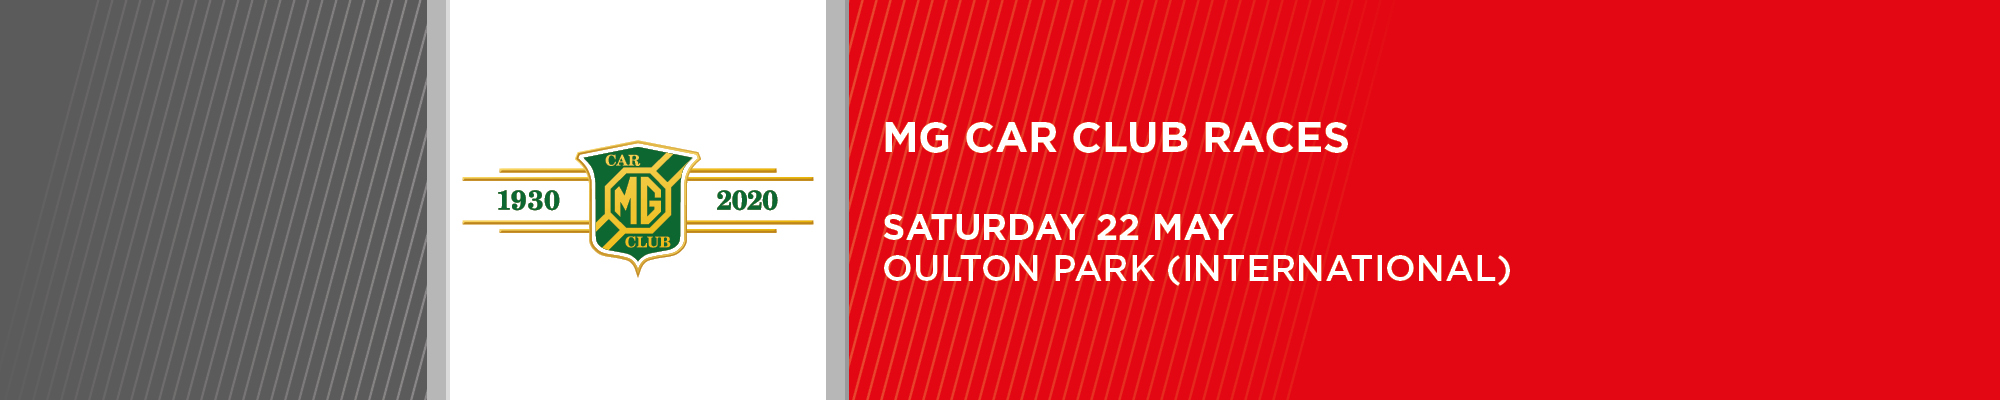 MG Car Club Racing